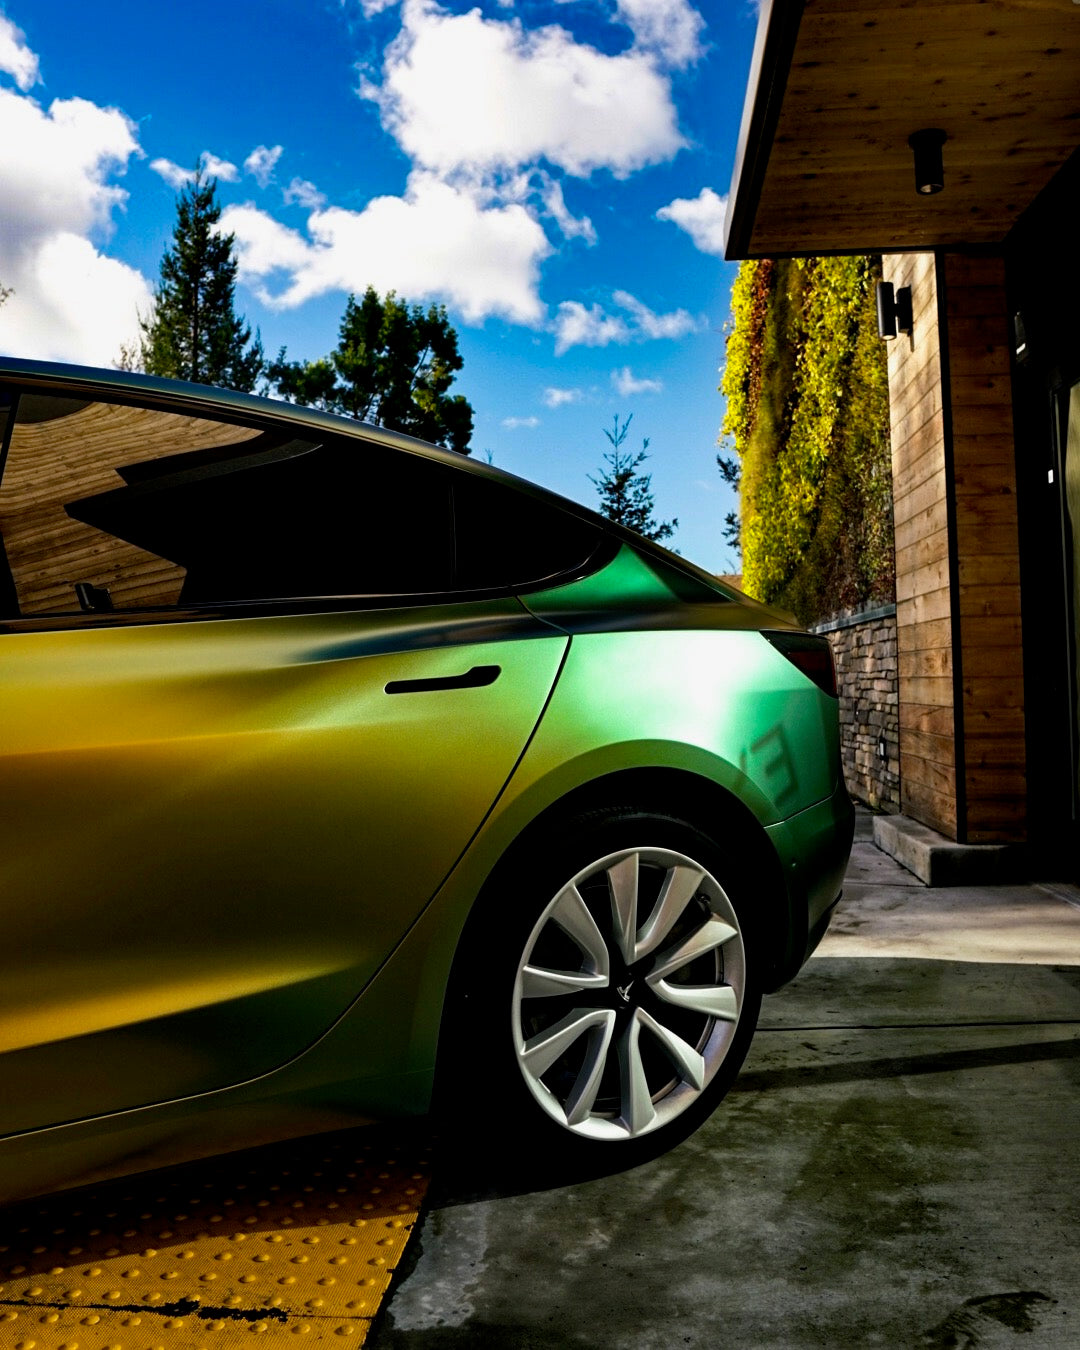 Tesla: Tesla Model 3 Owner Goes Green On St. Patrick's Day